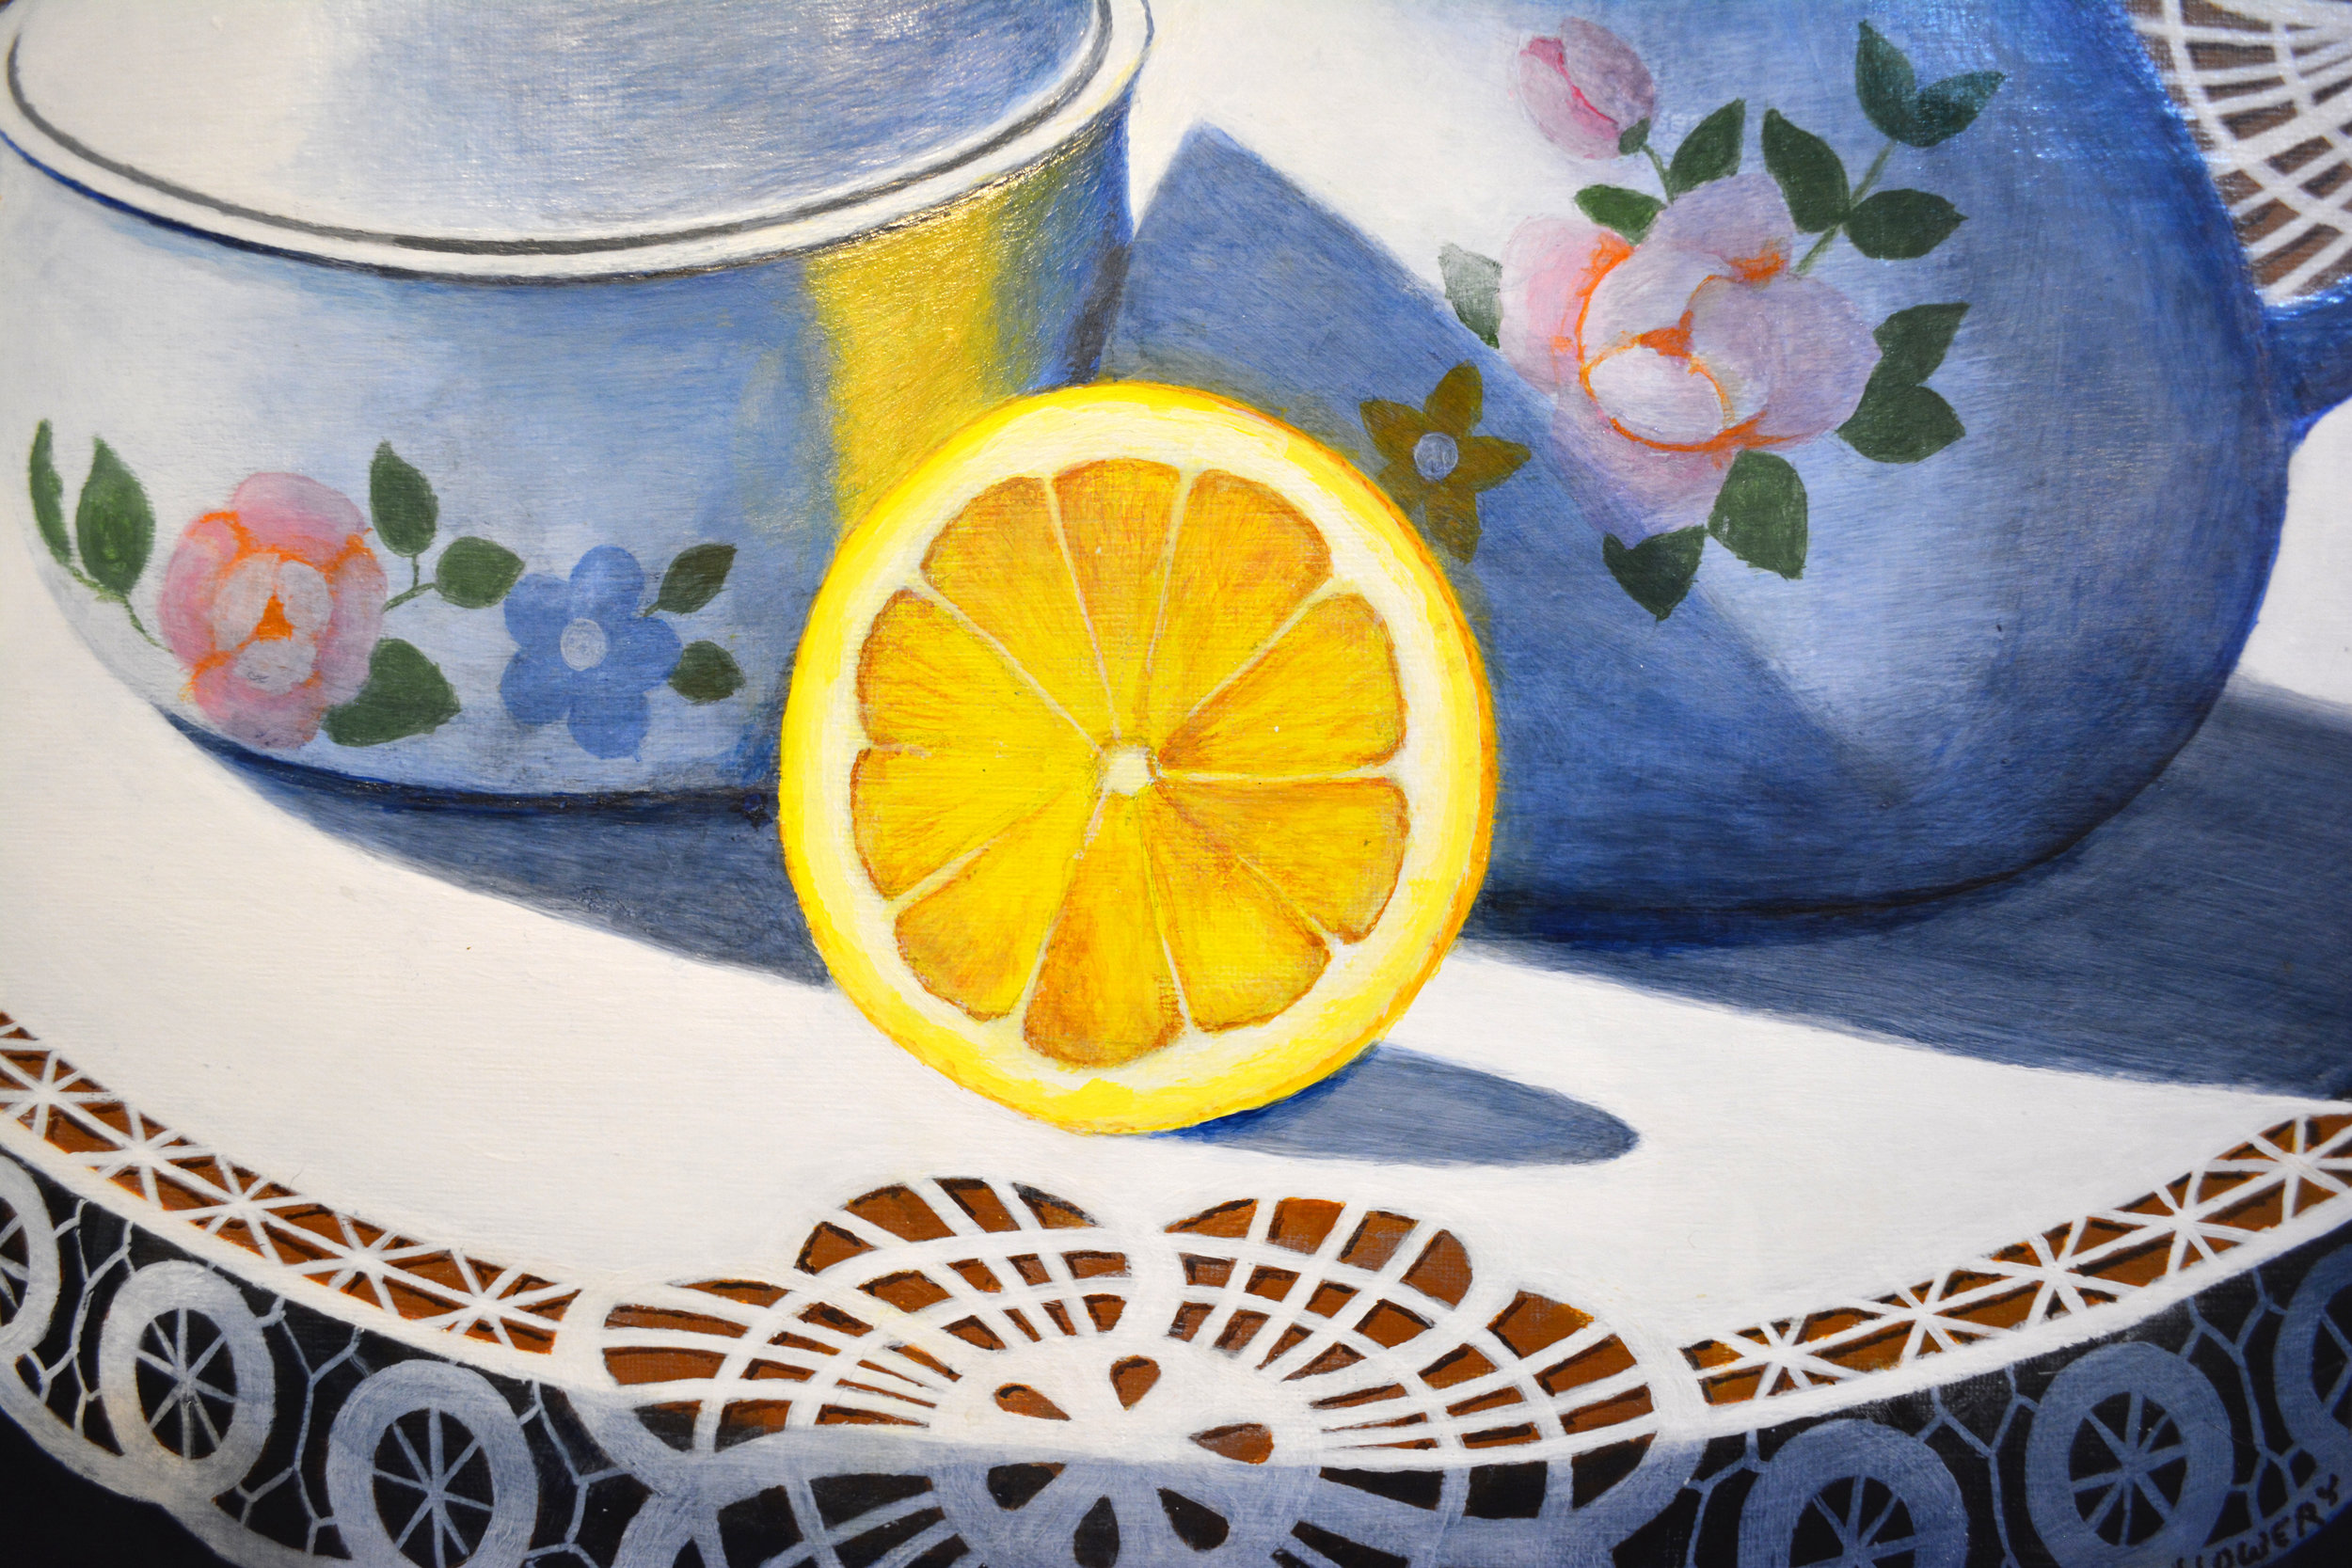 Joe Lowery - Framed realistic work in oil and acrylic on paper and canvas. Most known for captureing the clean details of a still life in the home.